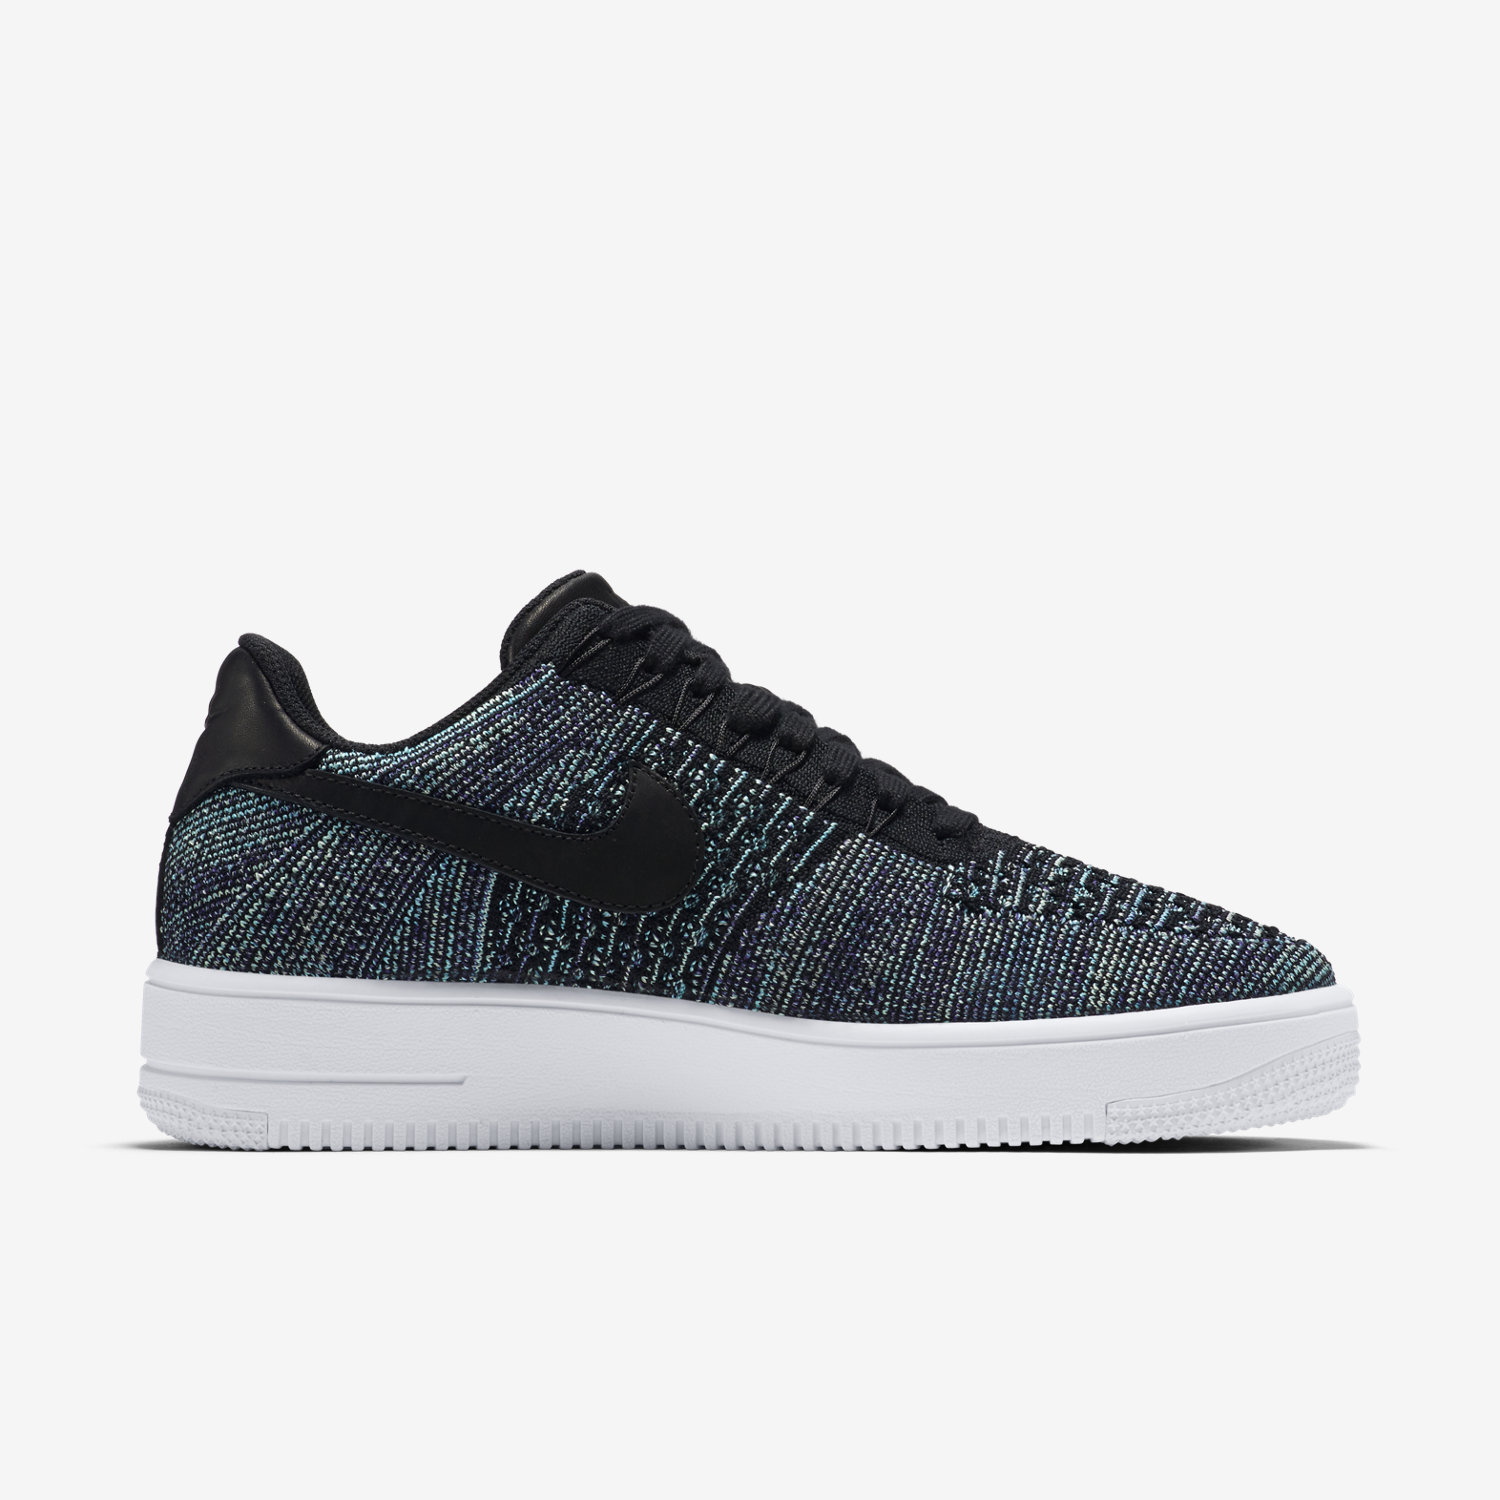 air force flyknit nere